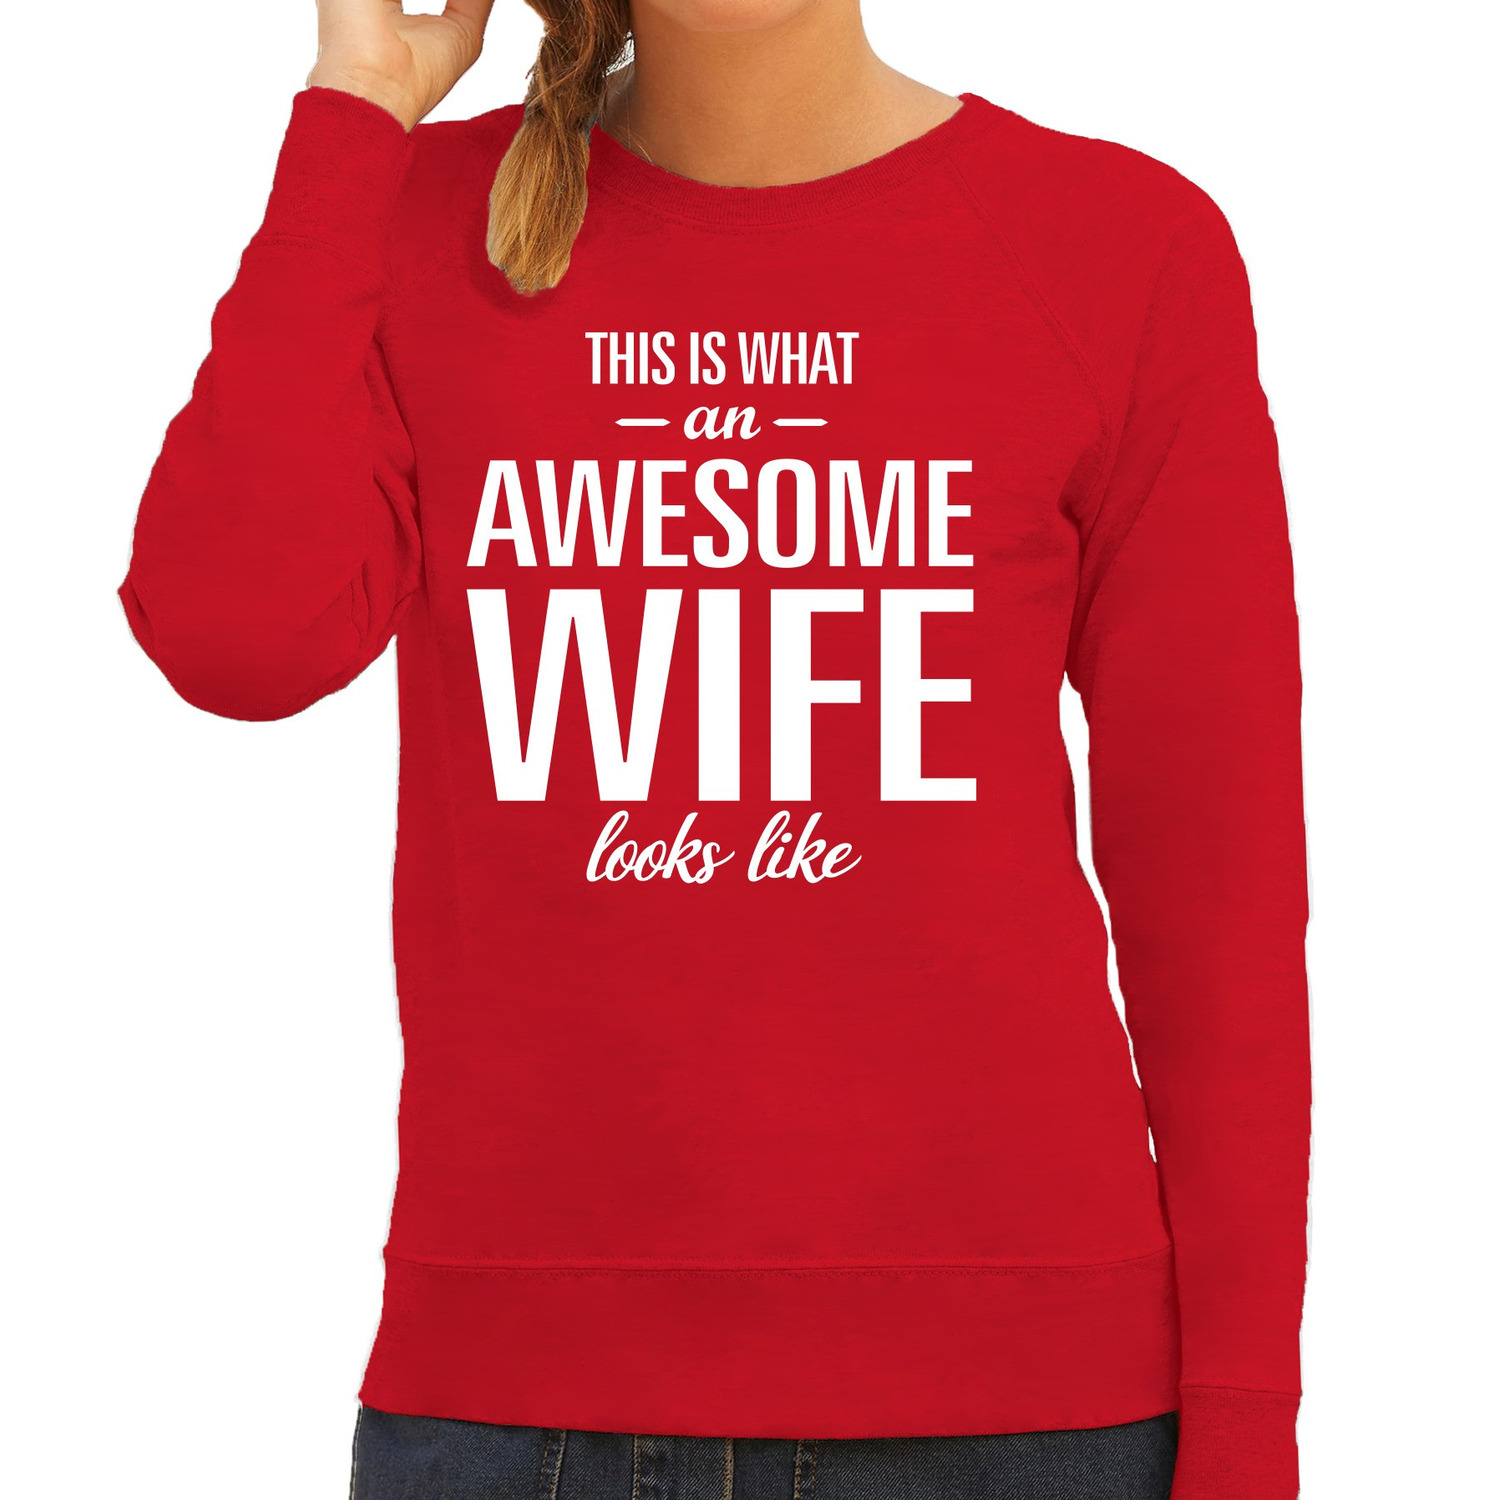 Awesome wife - vrouw - echtgenote cadeau trui rood dames